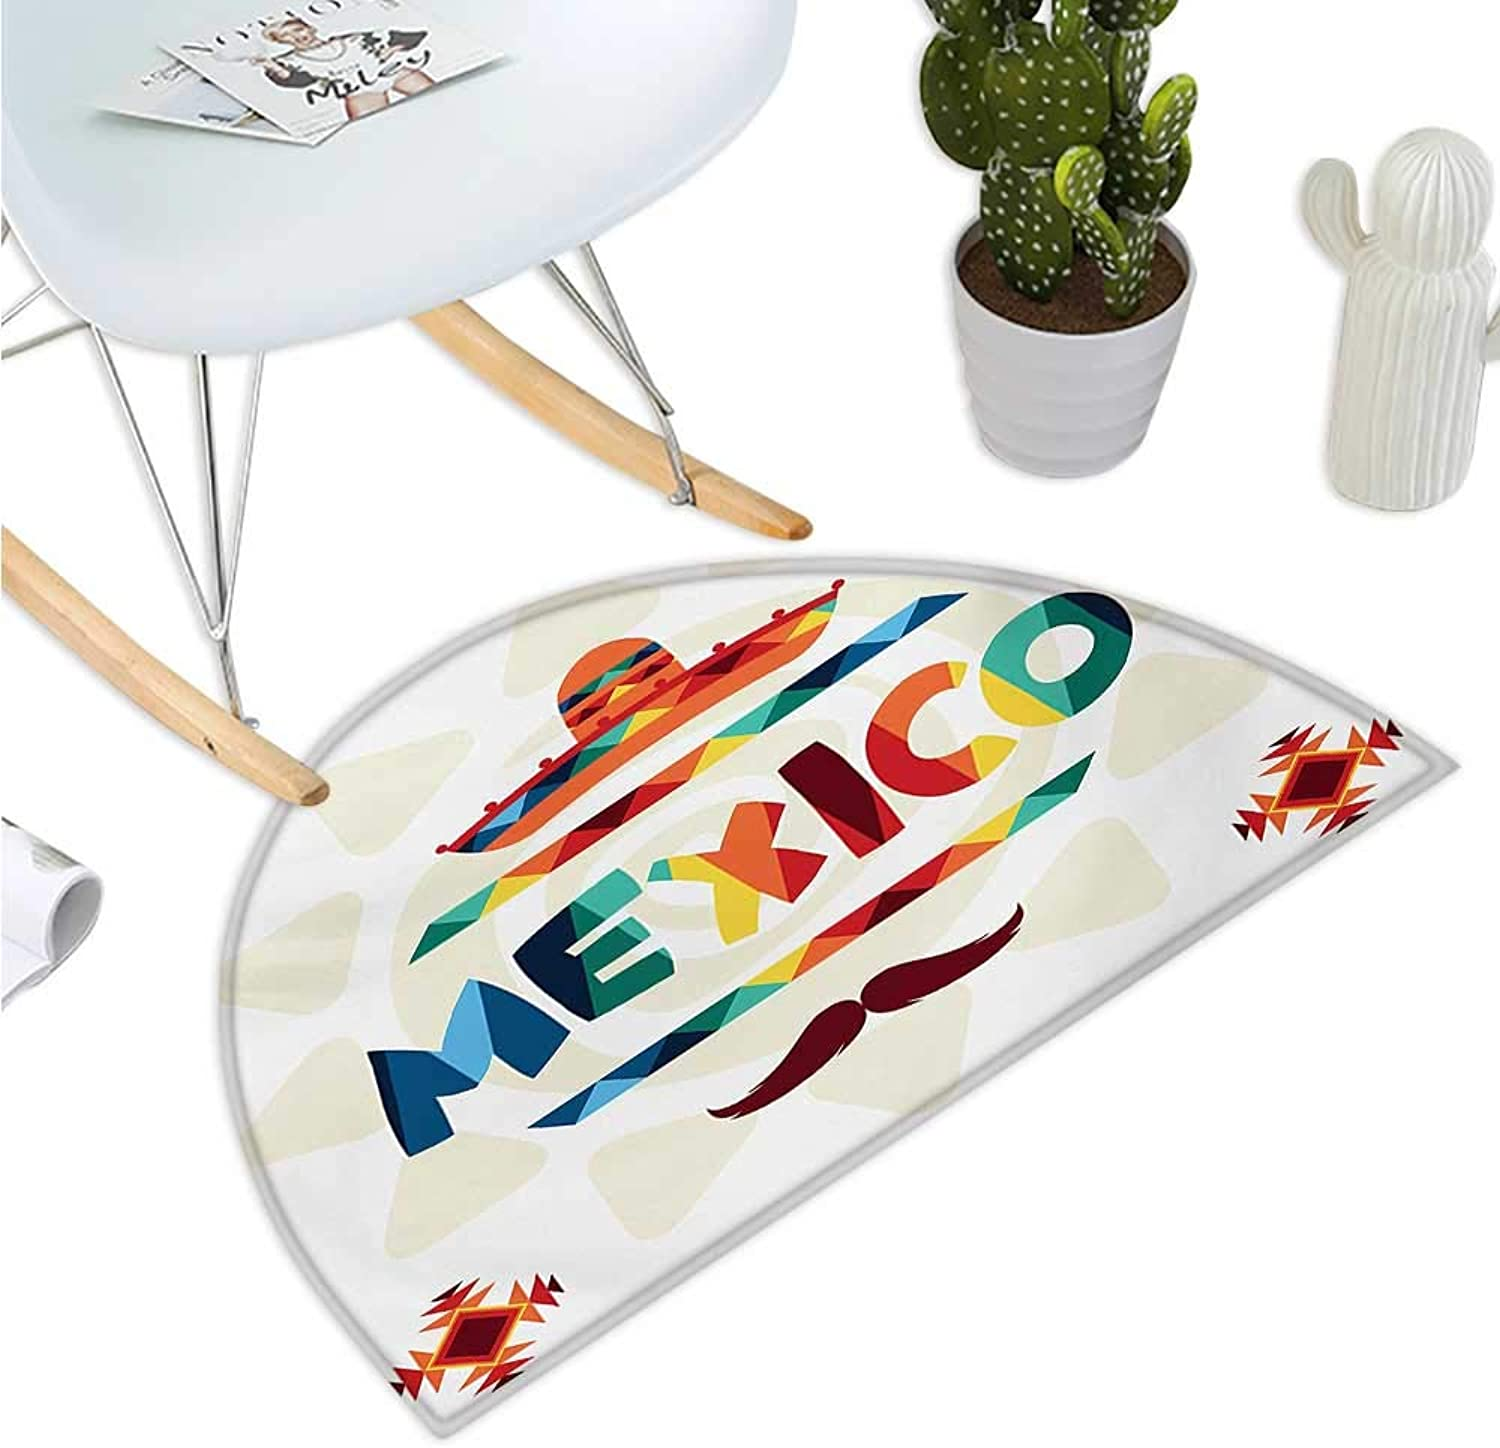 Mexican Semicircle Doormat Mexico Traditional Aztec Motifs and Sombrero Straw Hat and Moustache Graphic Print Entry Door Mat H 43.3  xD 64.9  Multicolor